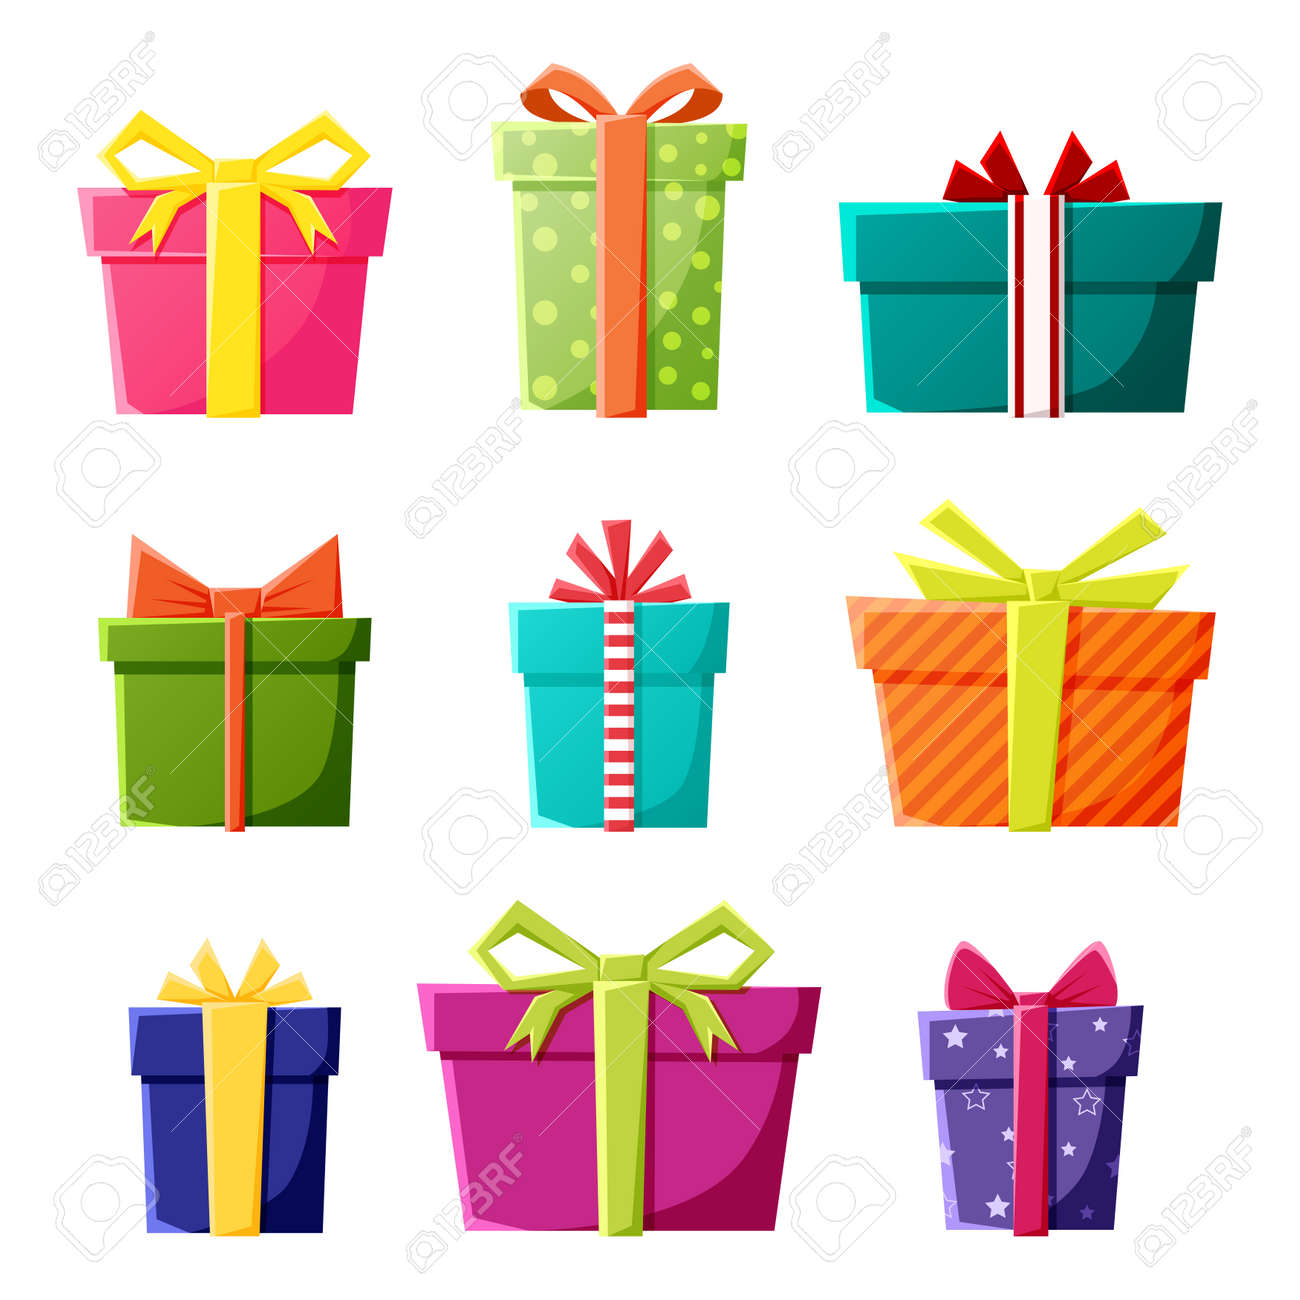 Vector set of gift boxes icons in color for New Year, Christmas or celebration party events. - 169470597